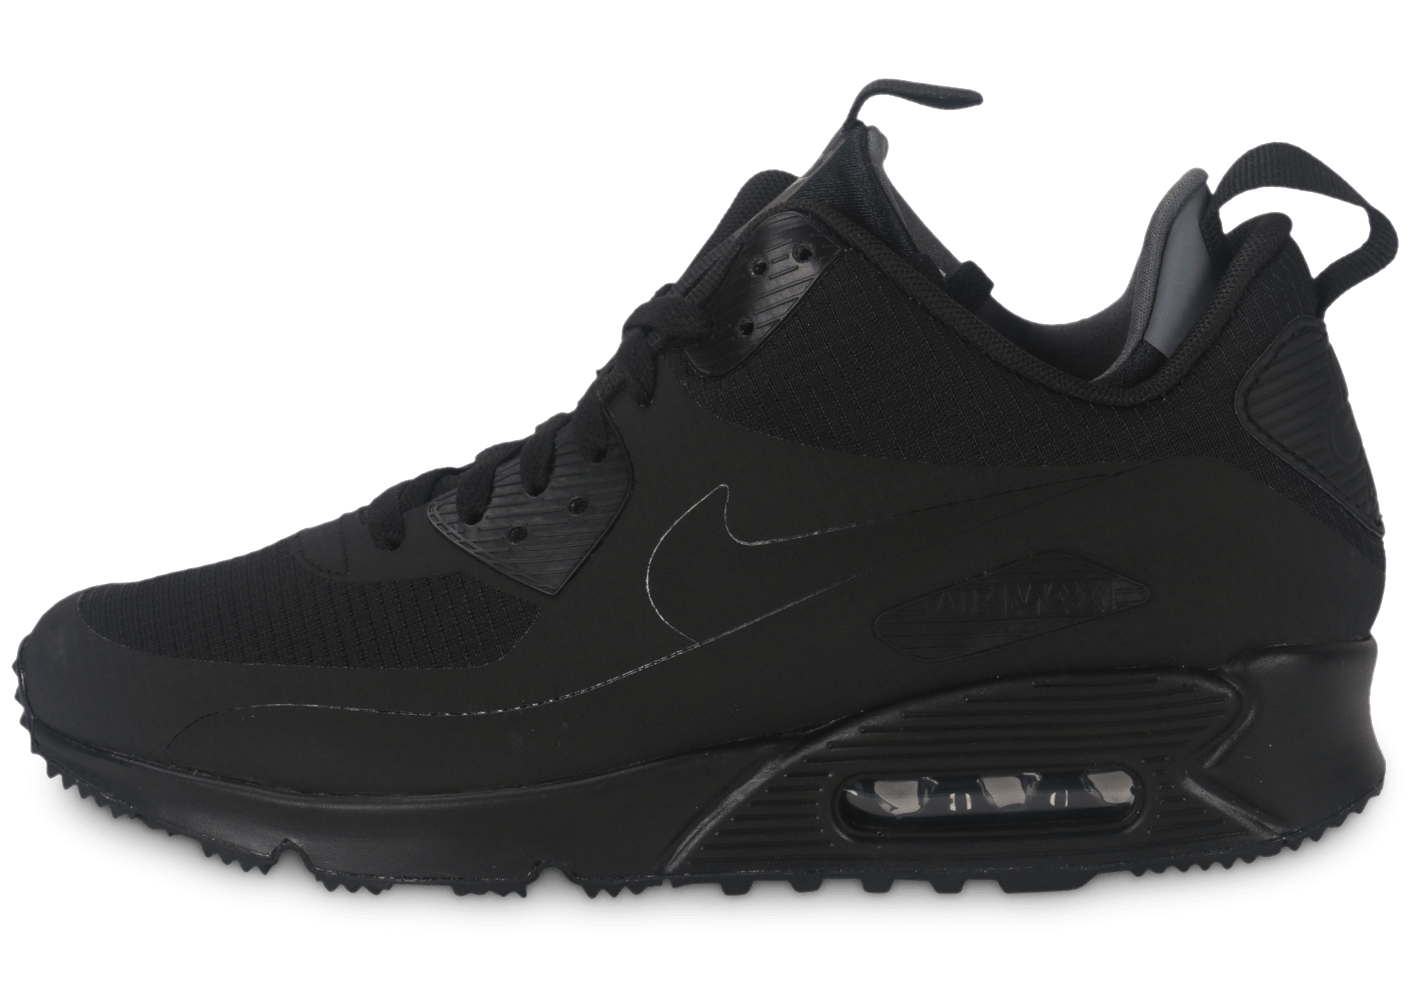 nike air max 90 mid winter noir chaussures homme chausport. Black Bedroom Furniture Sets. Home Design Ideas